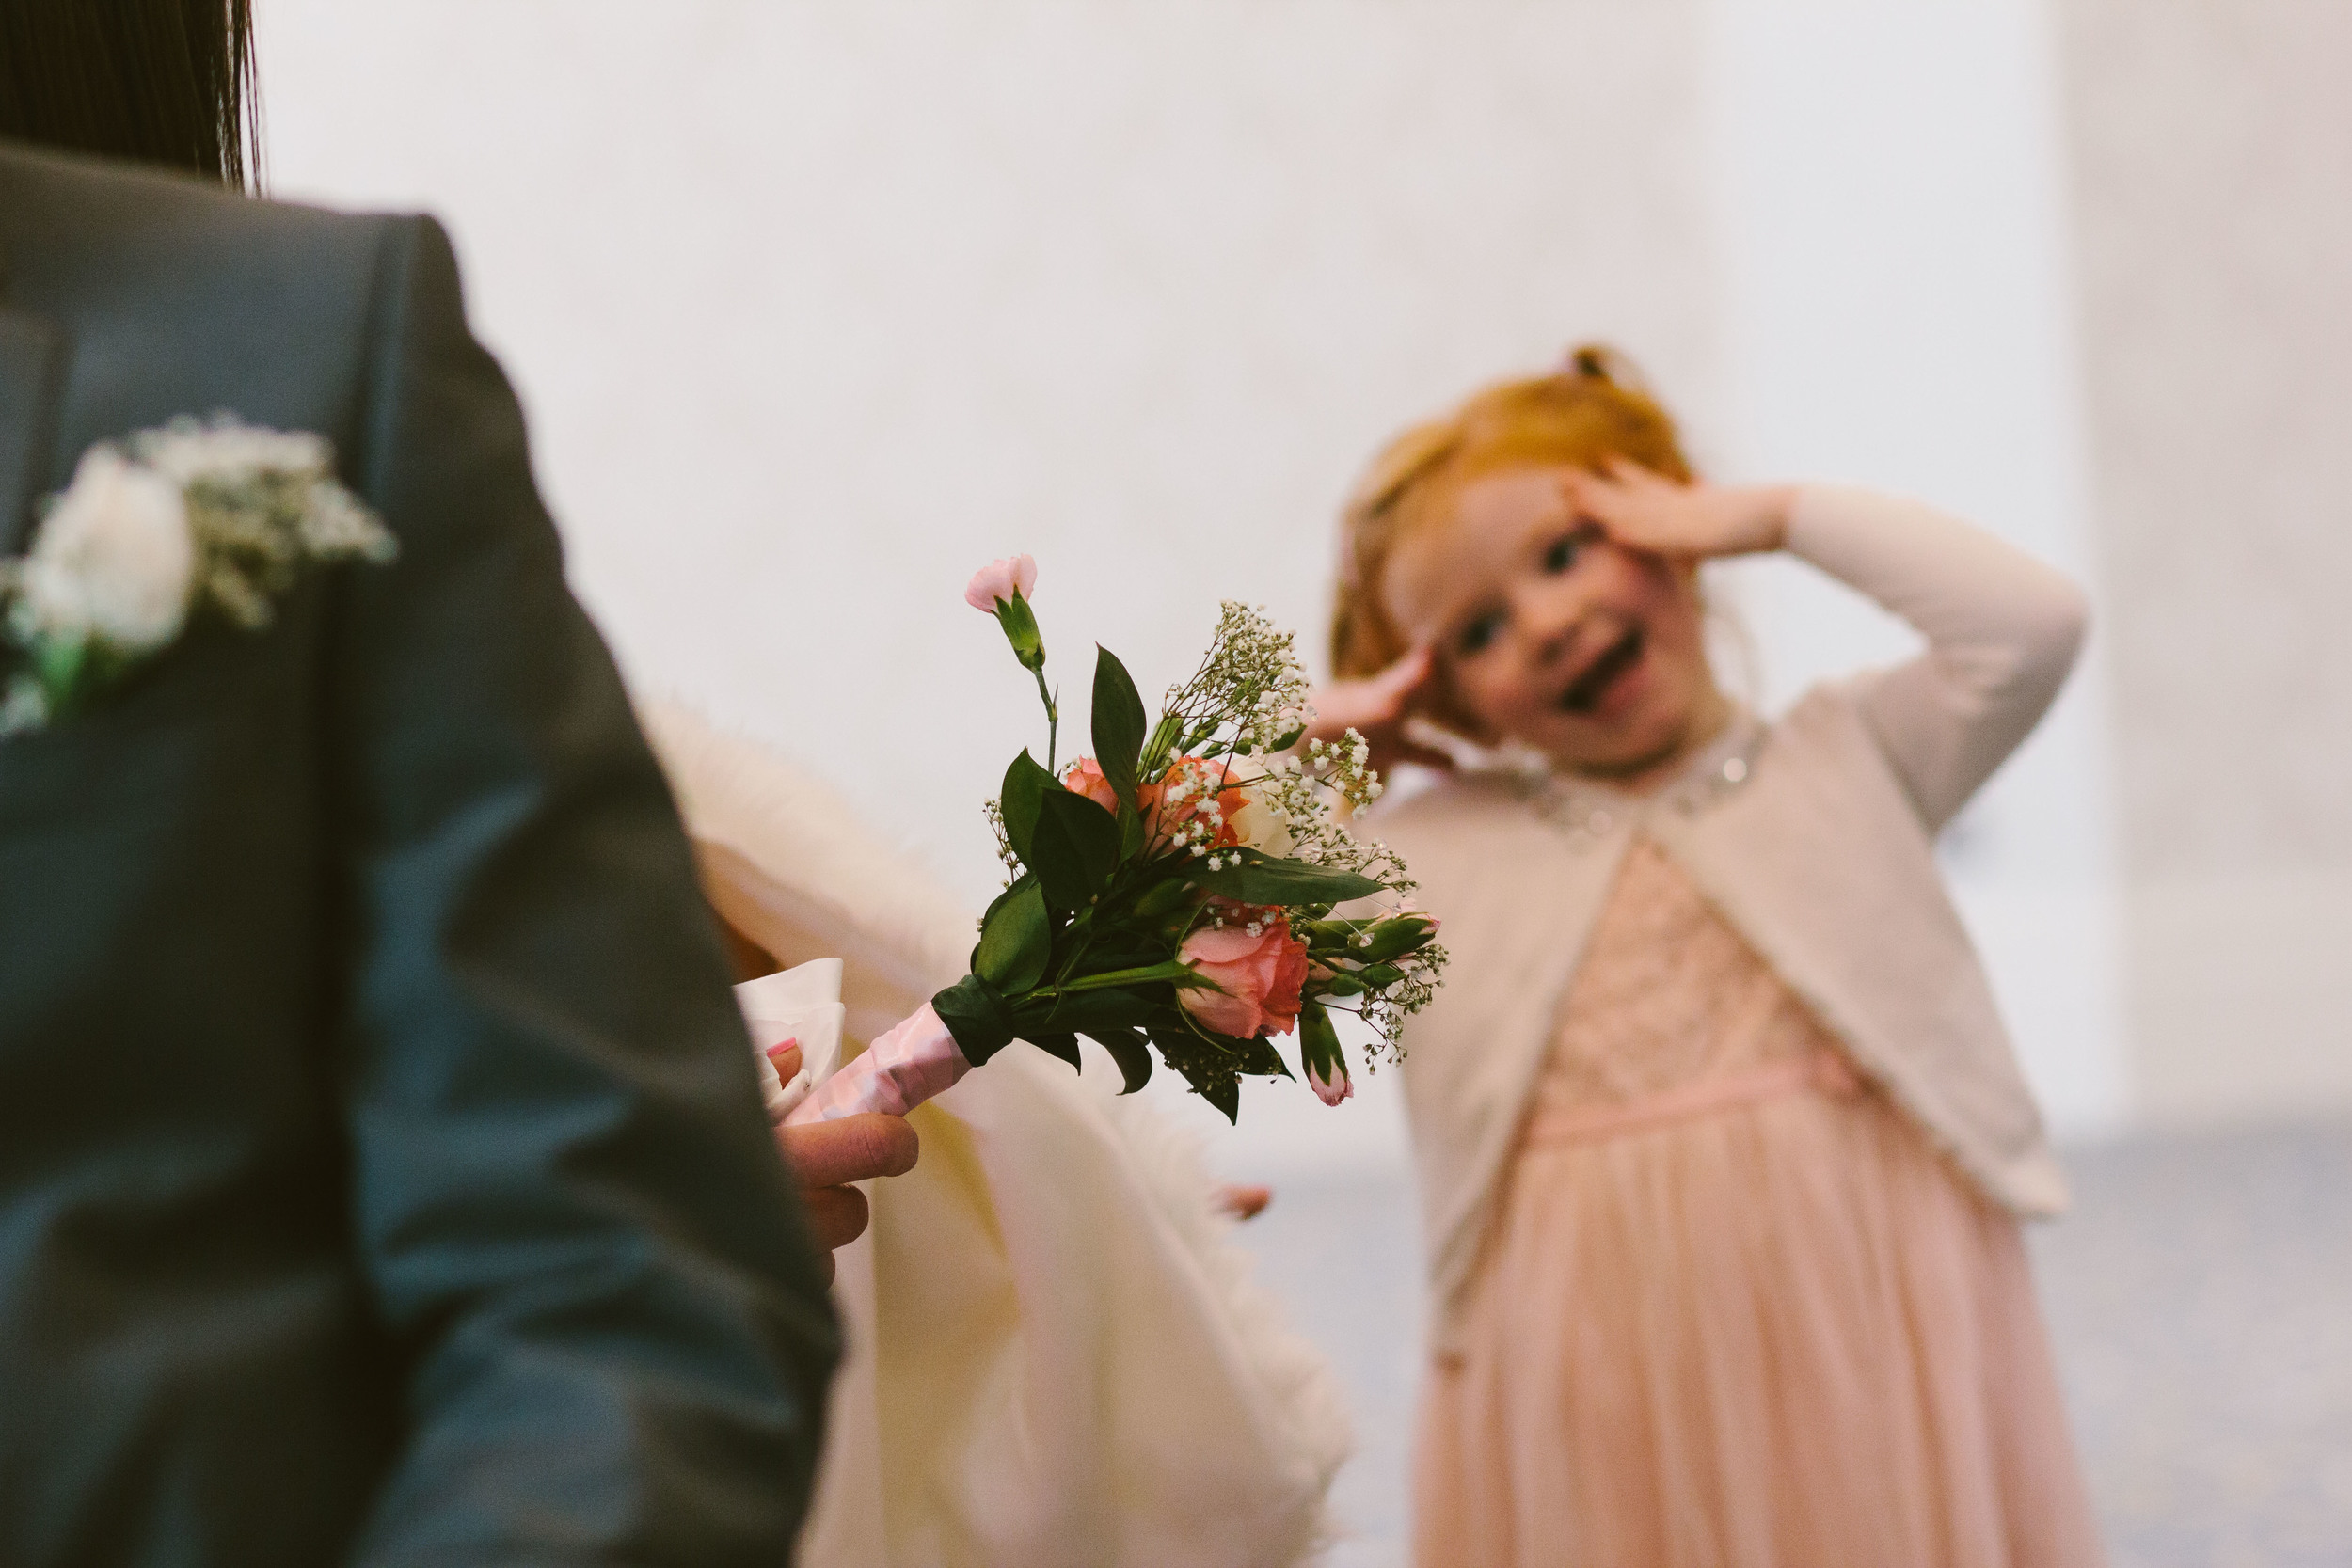 Newcastle Wedding Photographer Caledonian Hotel Bride's flowers with girl pulling a funny face